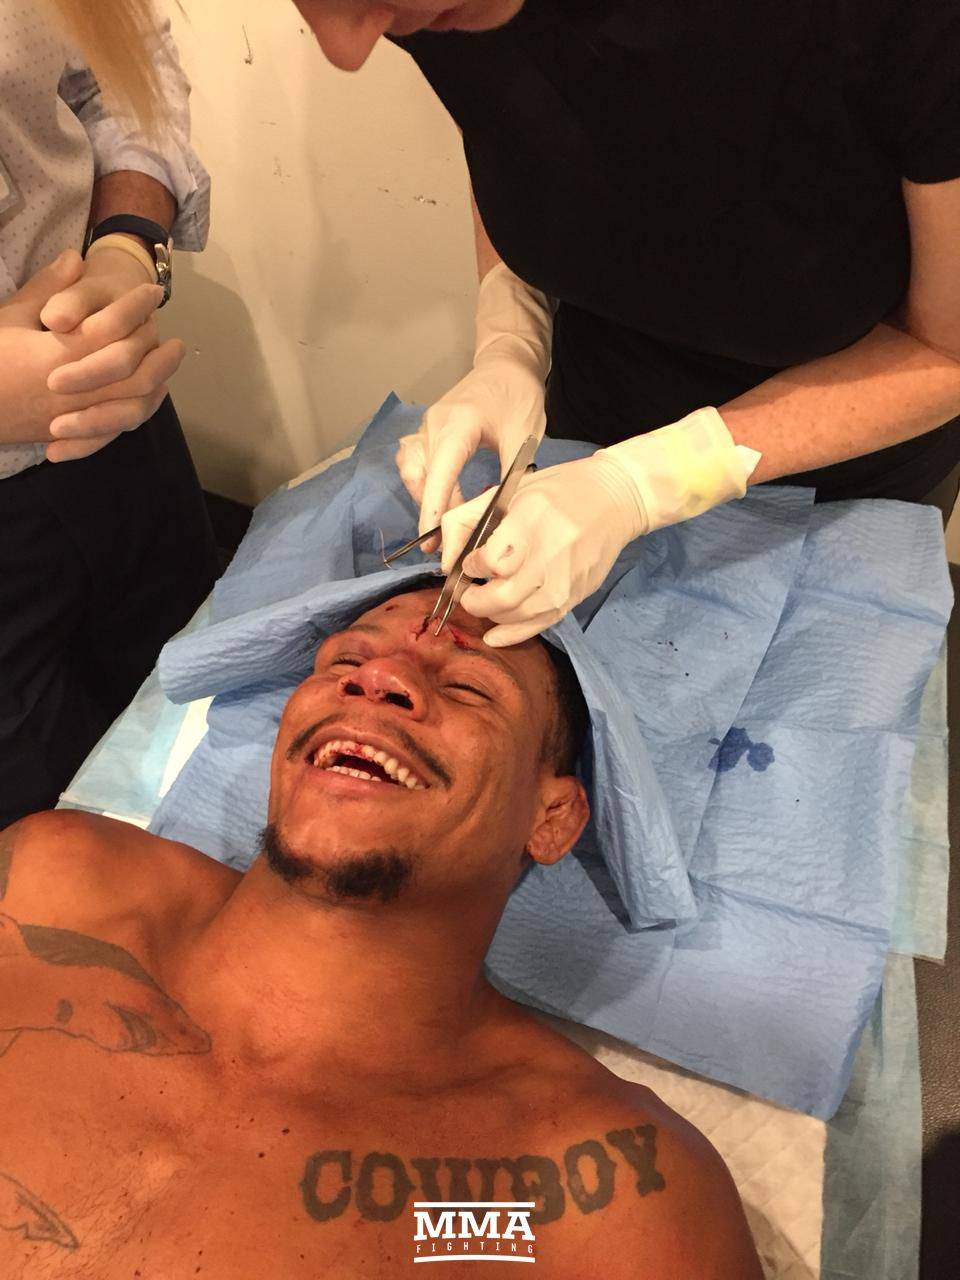 After suffering a nasty cut against Gunnar Nelson, Cowboy Oliveira receives 29 stitches...with a smile on his face -